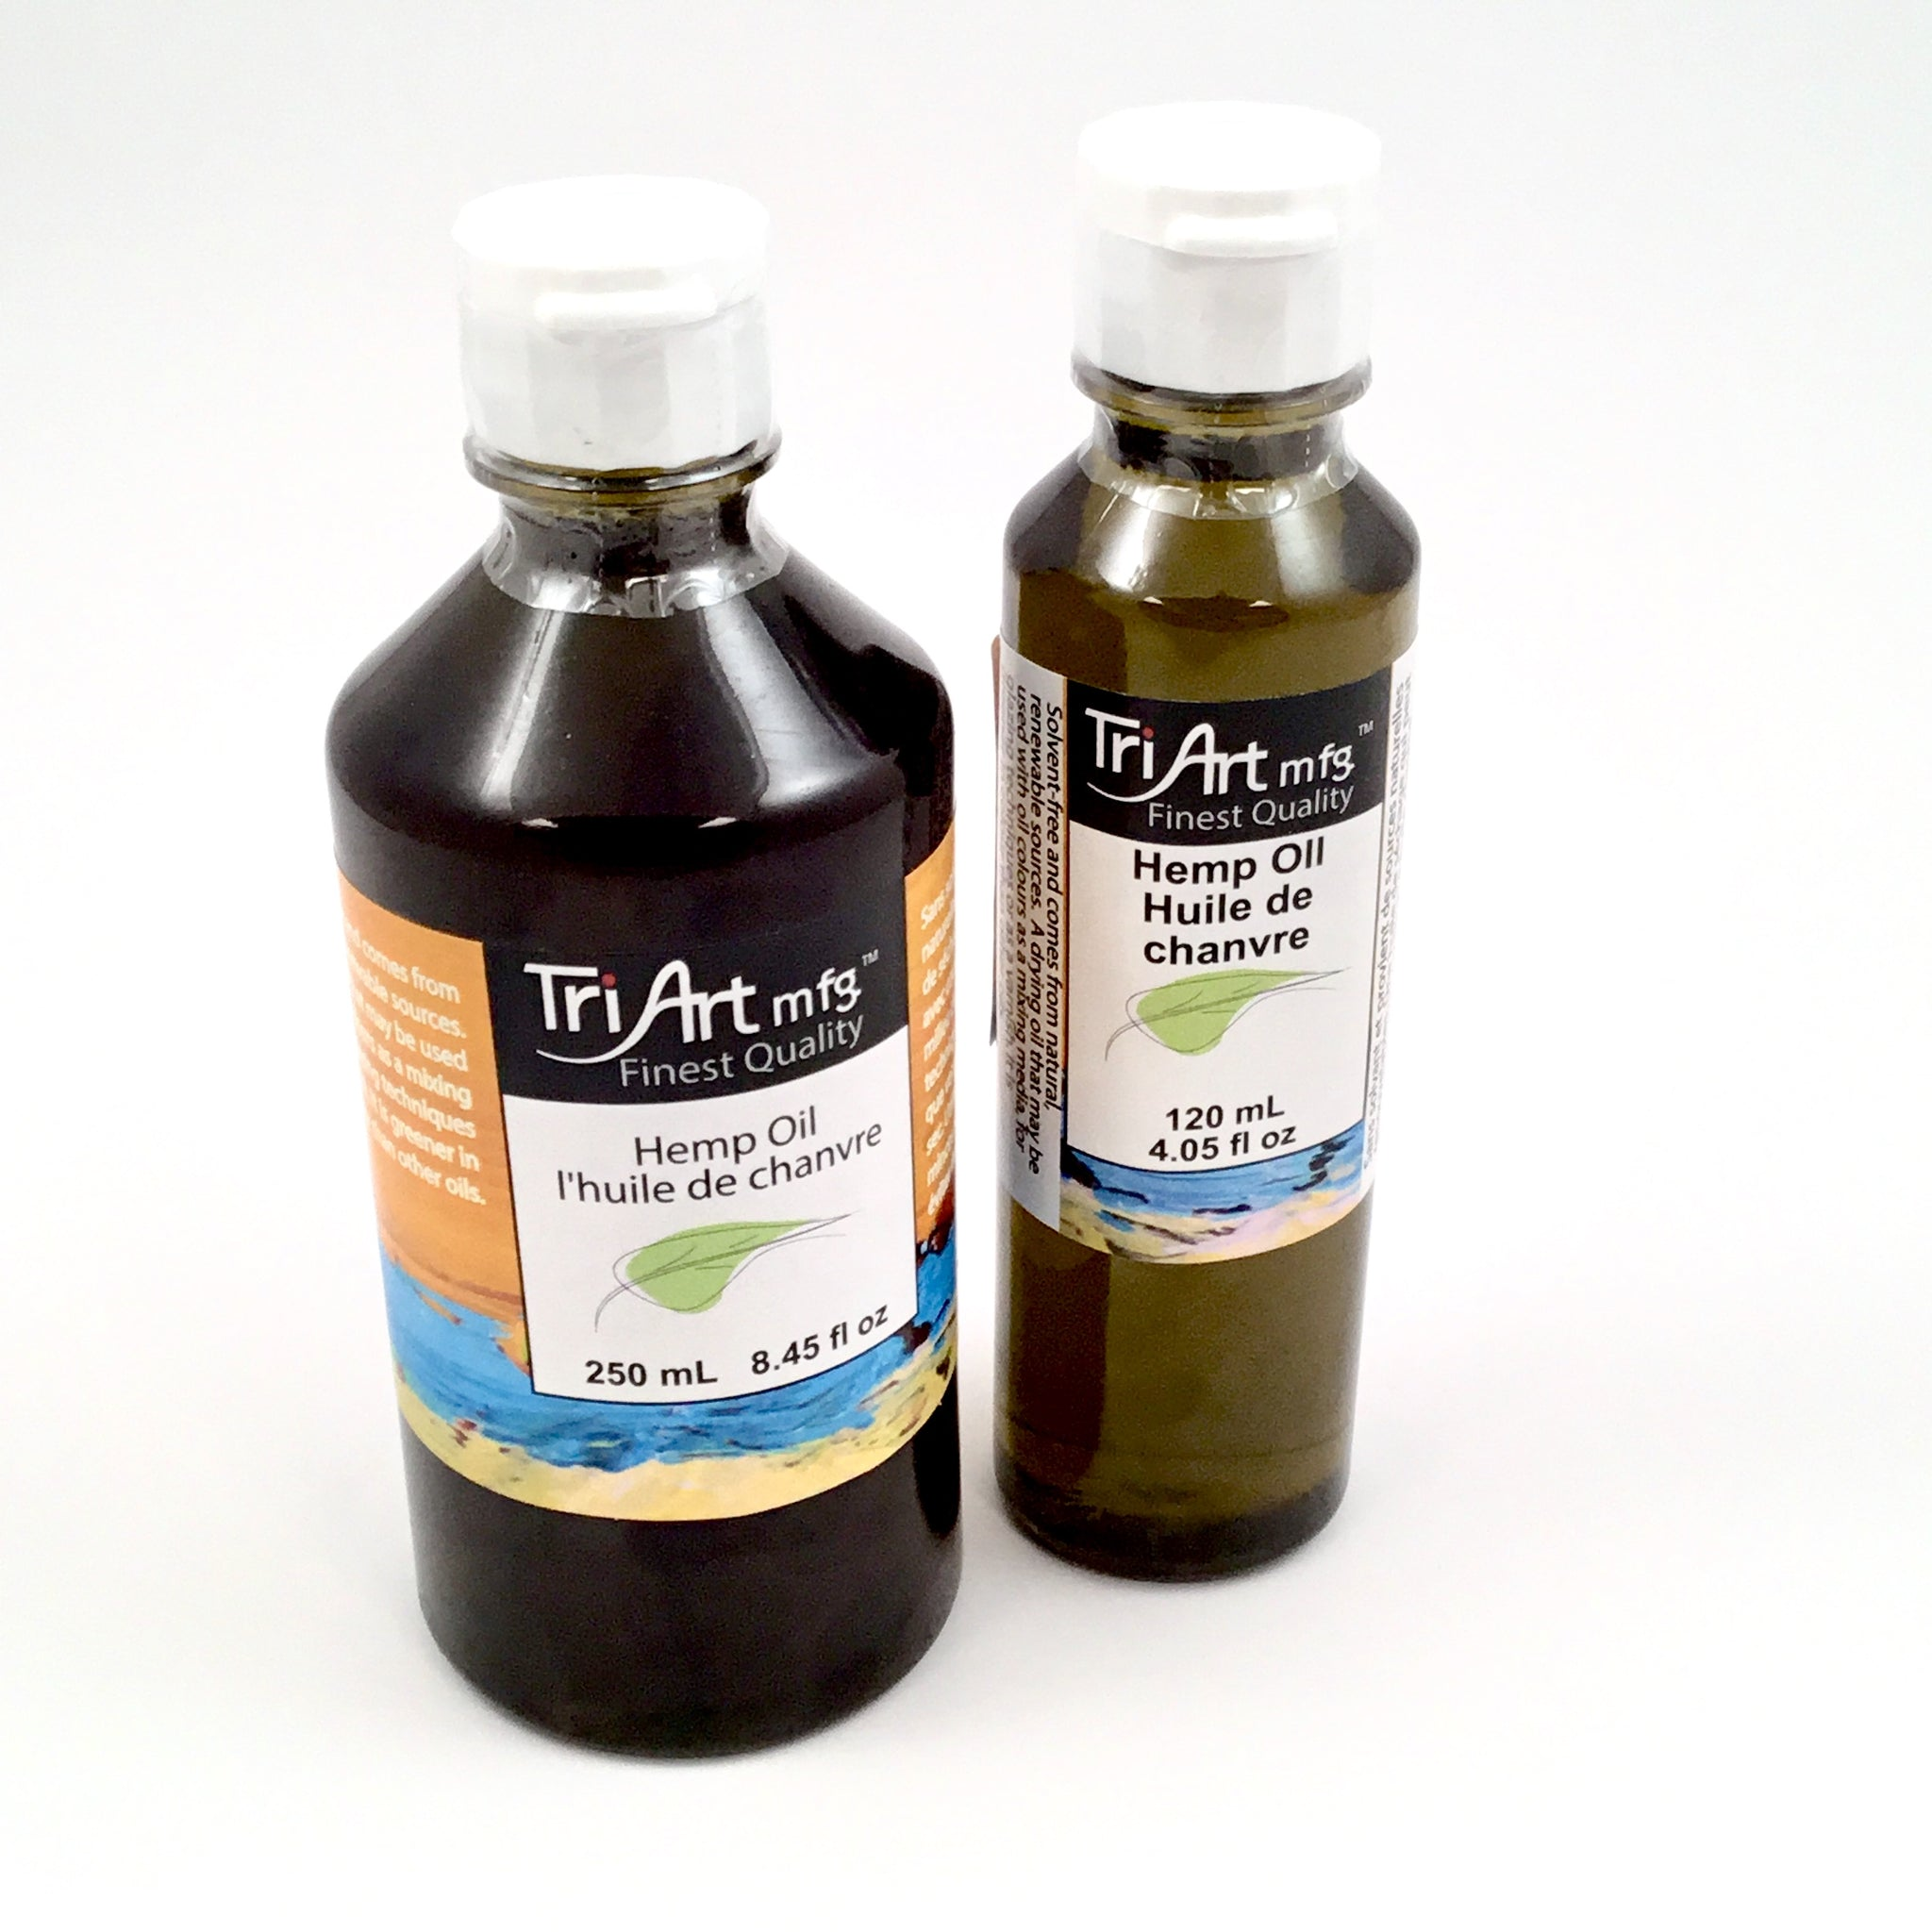 Tri-Art Hemp Oil 120ml